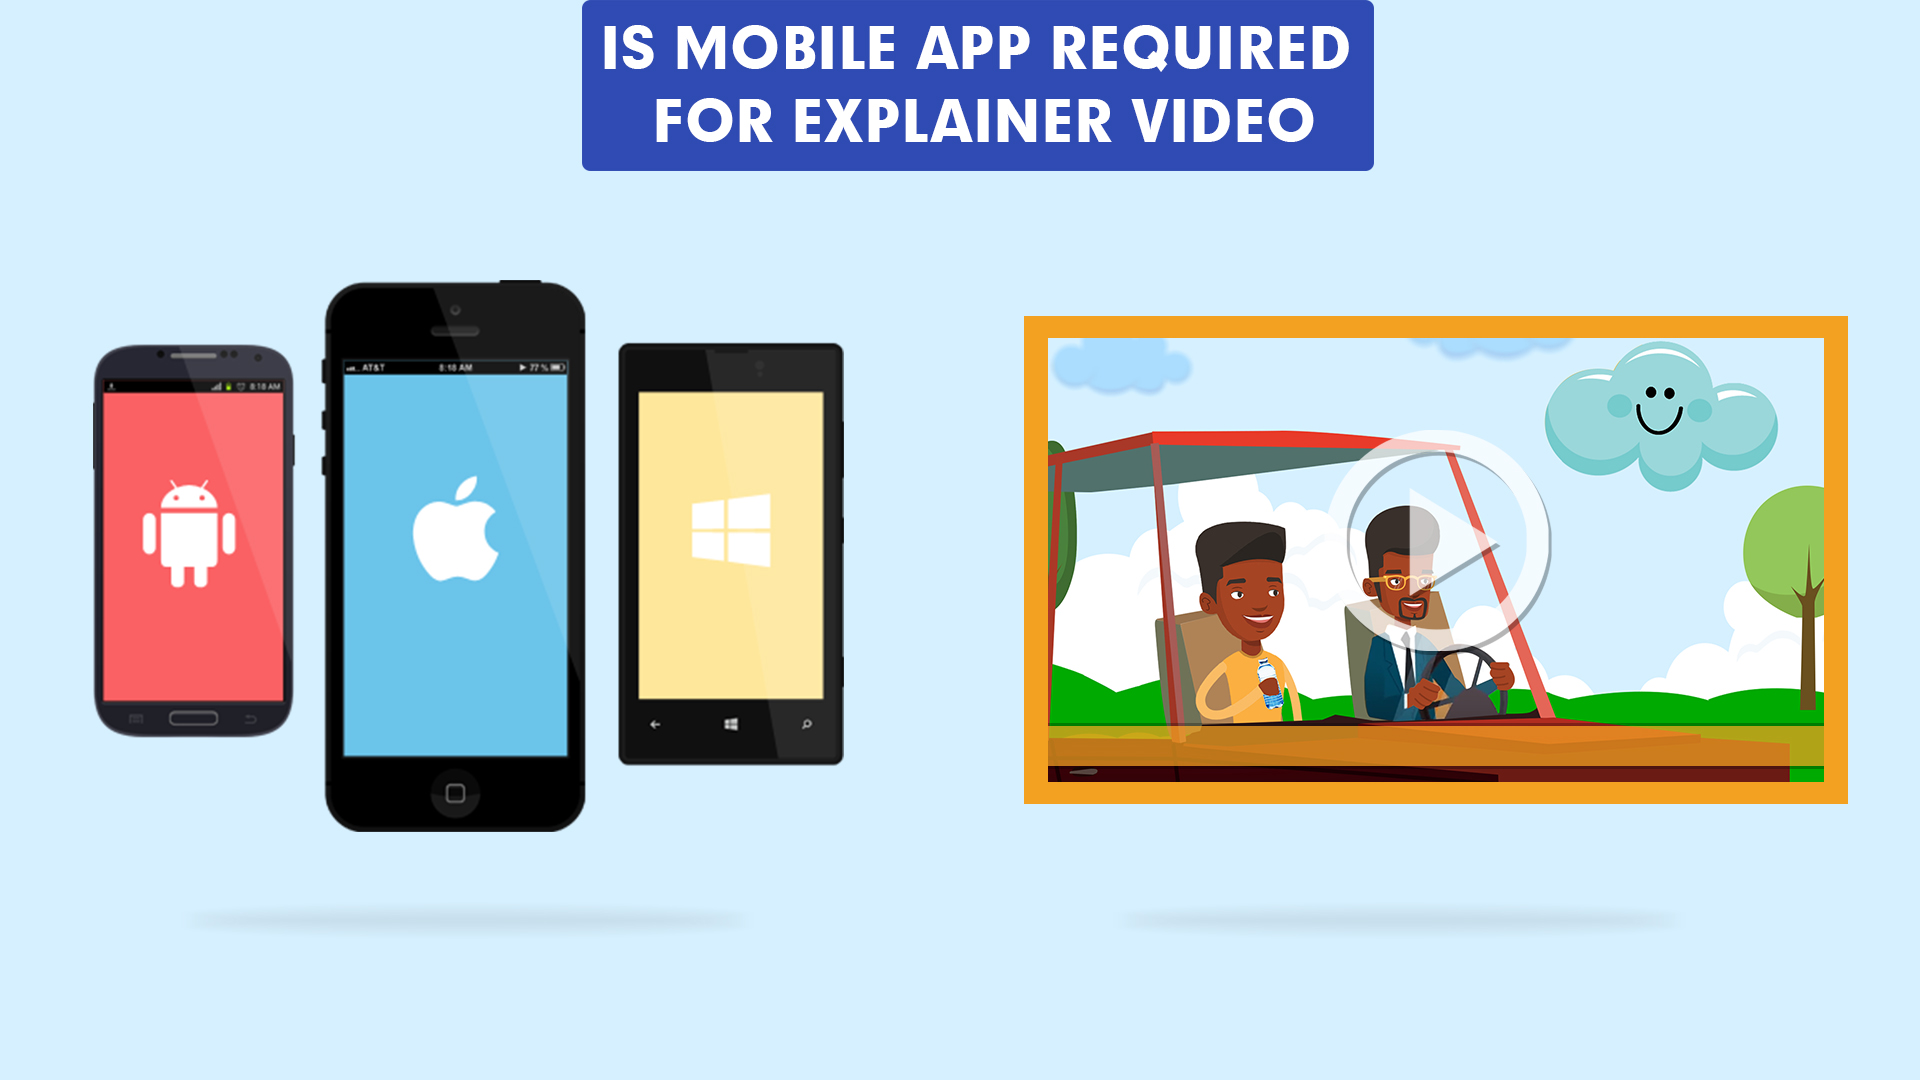 Is mobile app required for explainer video